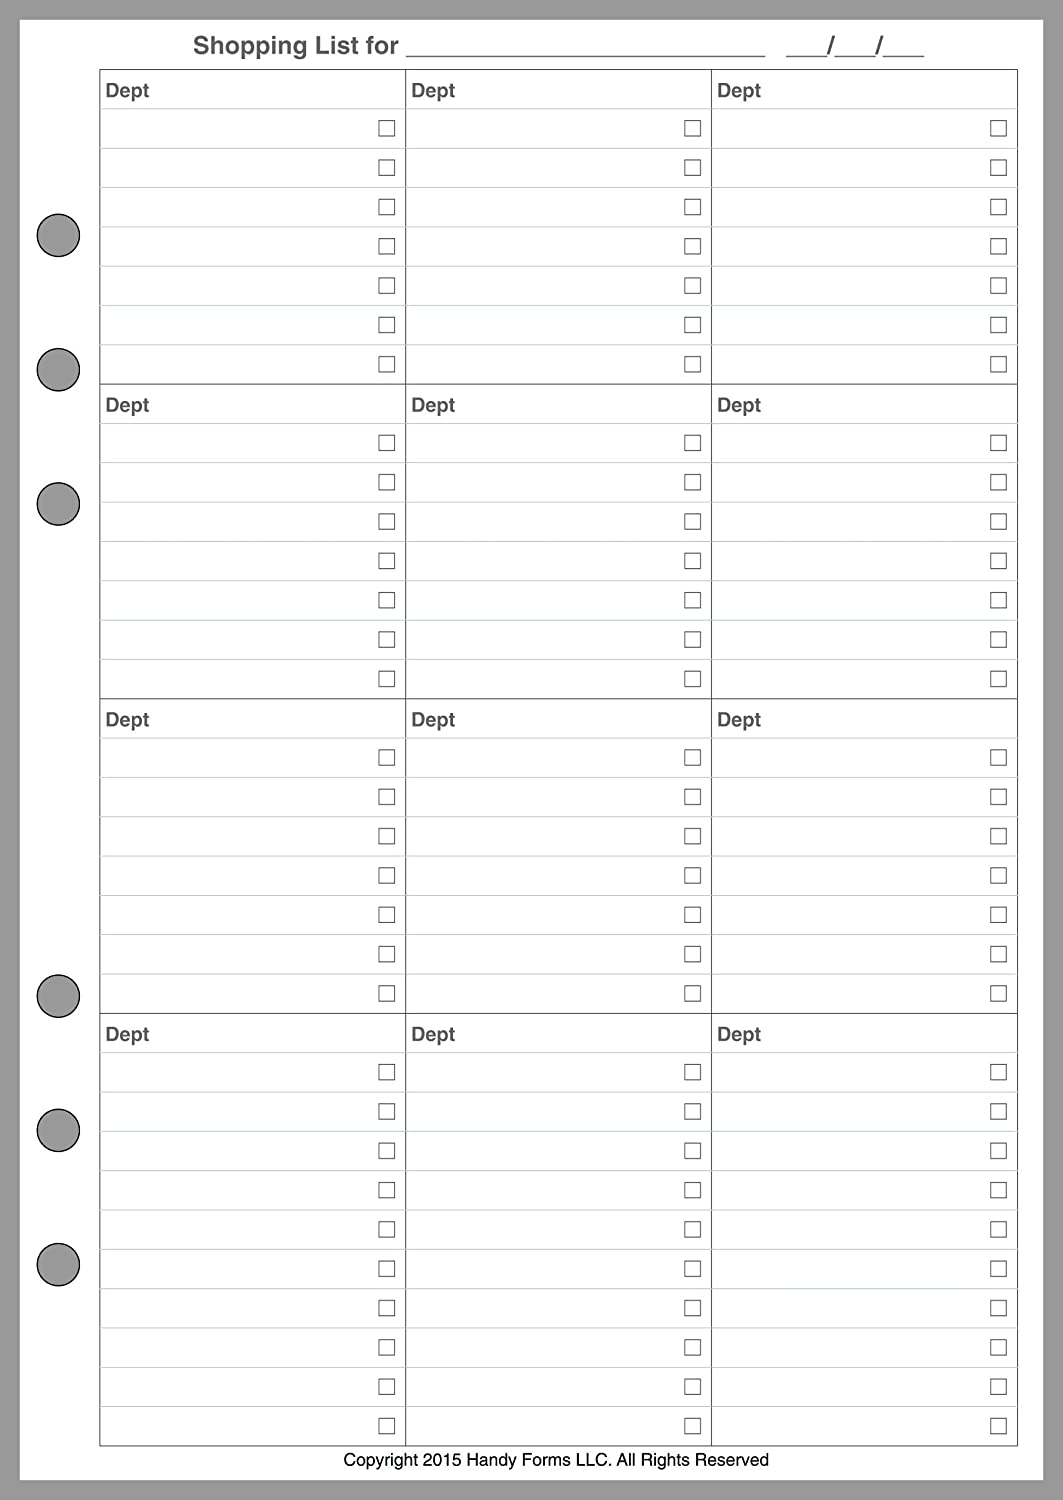 graphic about A5 Planner Printables referred to as A5 Sizing Toward Do Listing Planner internet pages, Sized and Punched for 6-Ring A5 Notebooks via Filofax, LV (GM), Kikki K, TMI, and some others. Sheet Dimension 5.83\